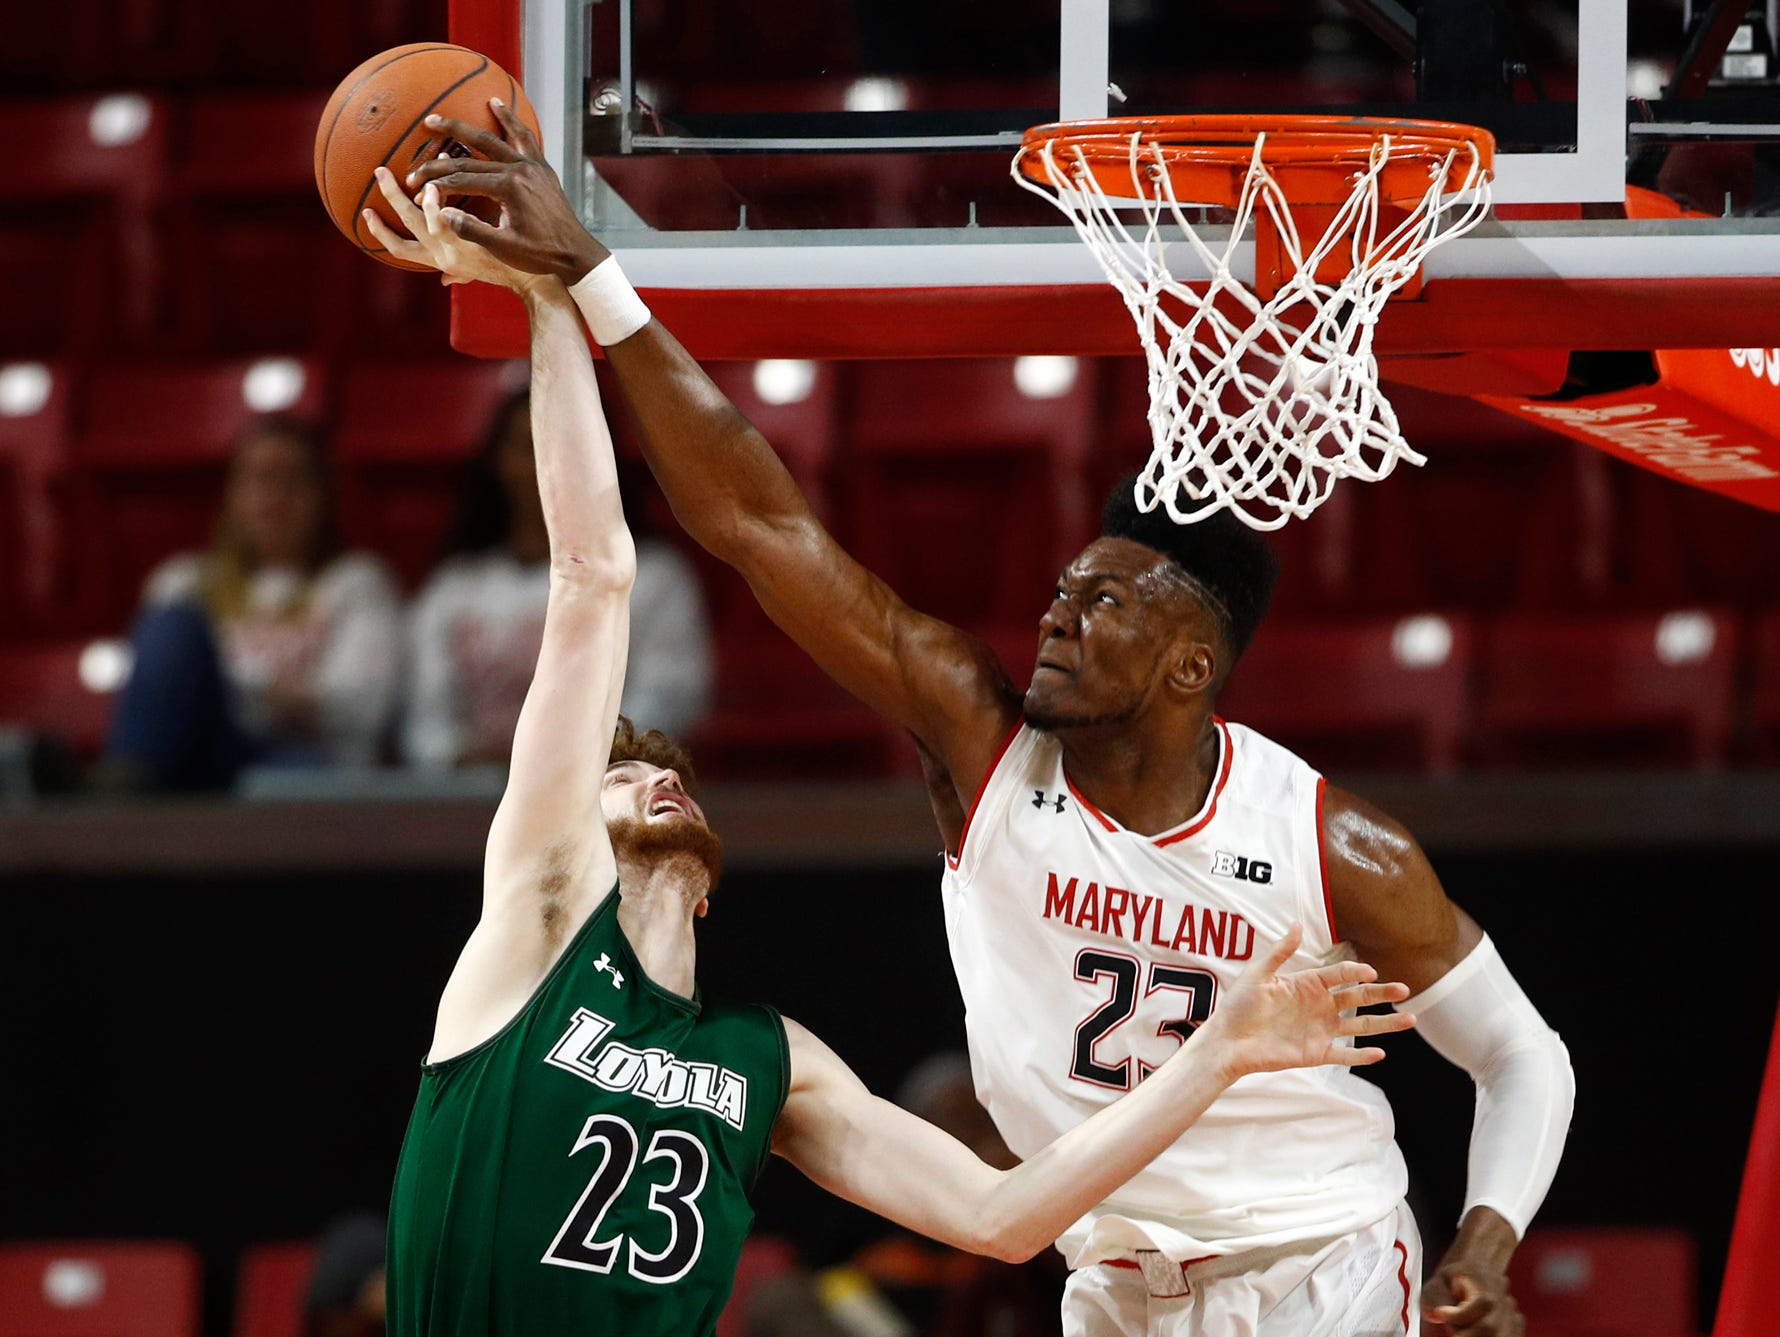 Maryland forward Bruno Fernando, right, of Angola, blocks a shot attempt by Loyola-Maryland forward Brent Holcombe in the second half of an NCAA college basketball game, Tuesday, Dec. 11, 2018, in College Park, Md. Maryland won 94-71. (AP Photo/Patrick Semansky)